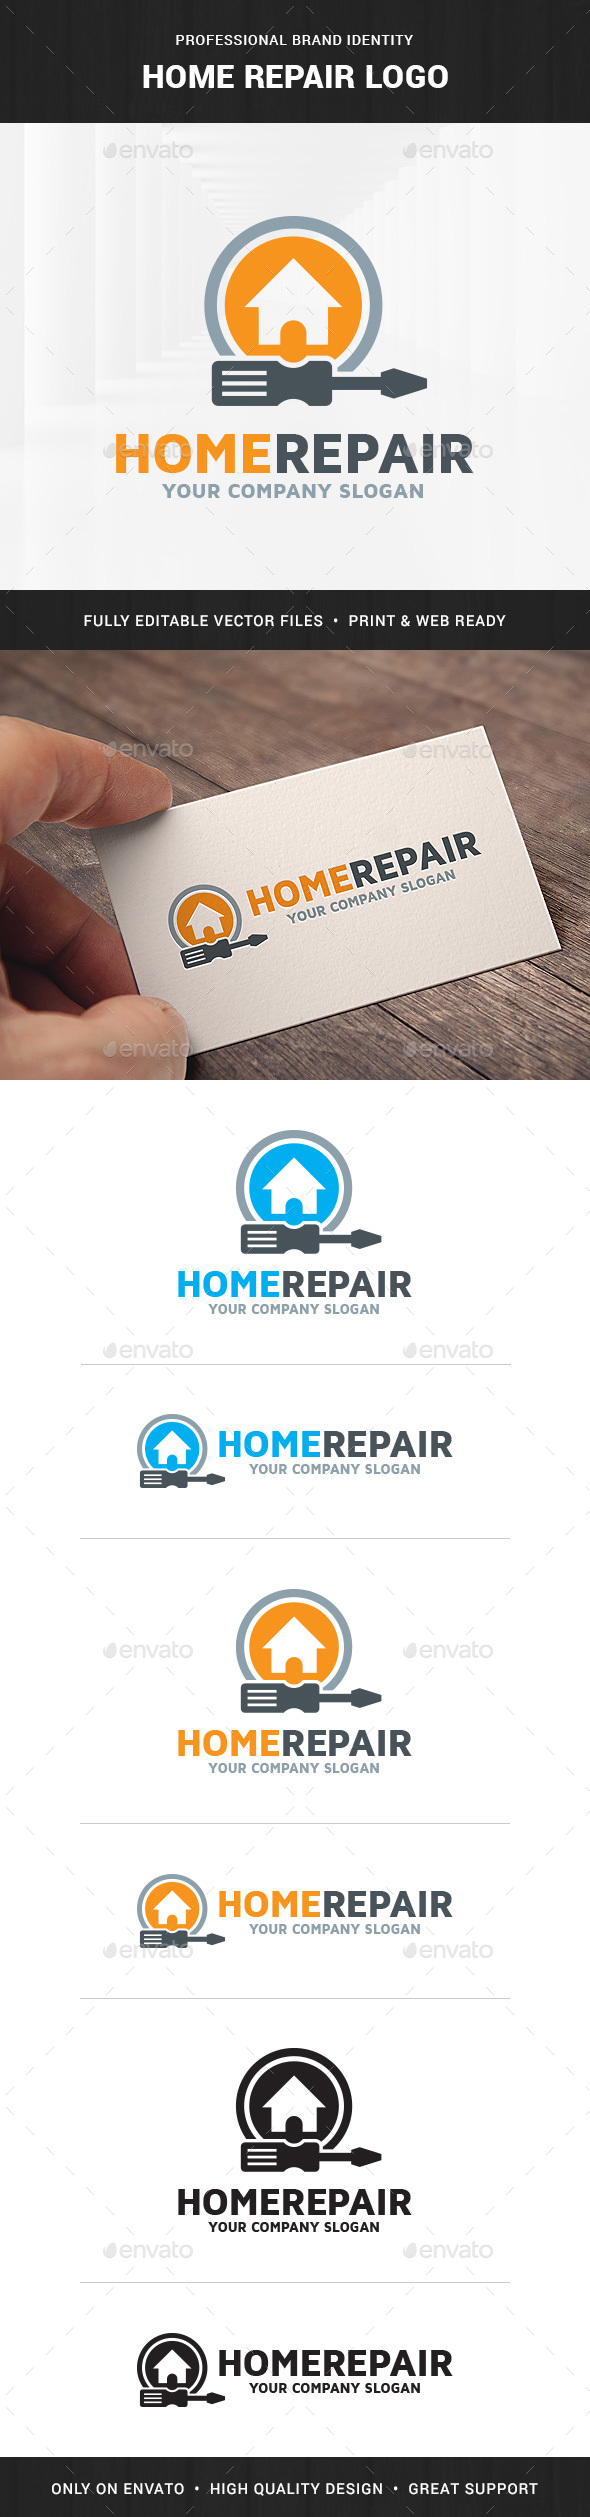 Home Repair Logo Template - Objects Logo Templates